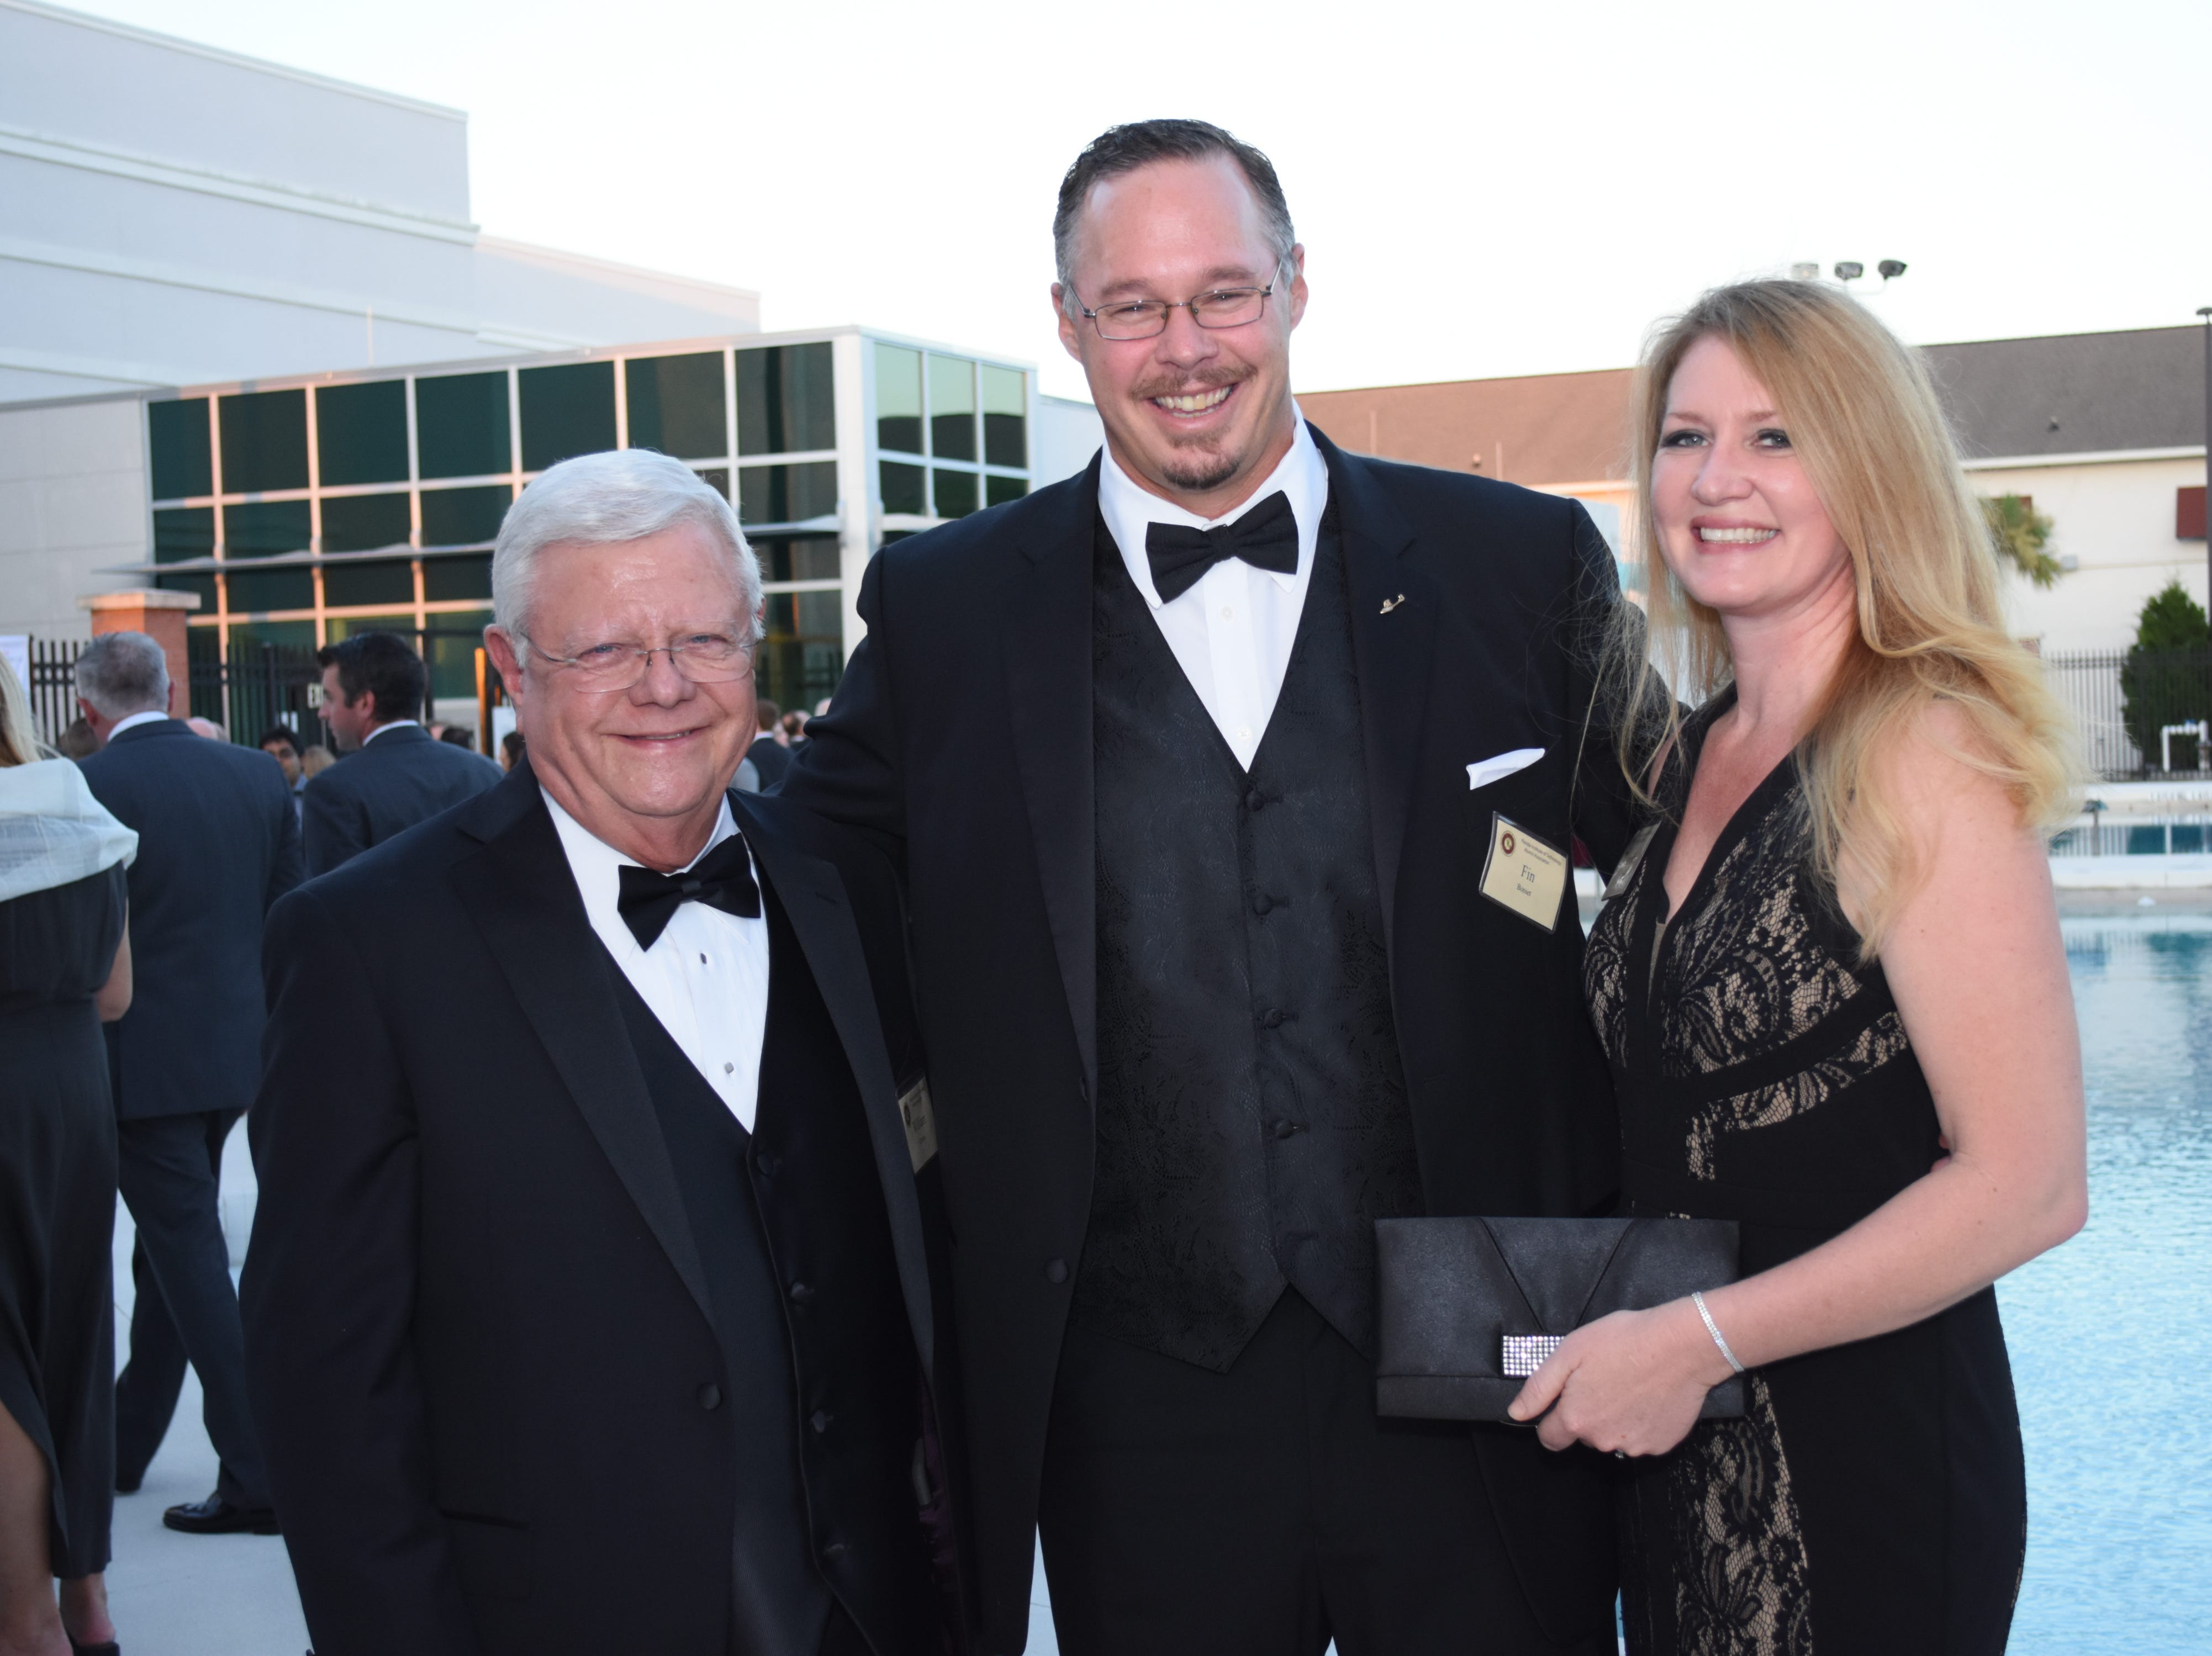 William Graves with Jennifer and Fin Bonset at Florida Tech's 60th Anniversary Homecoming Gala Oct. 13, 2018, at the Clemente Center.